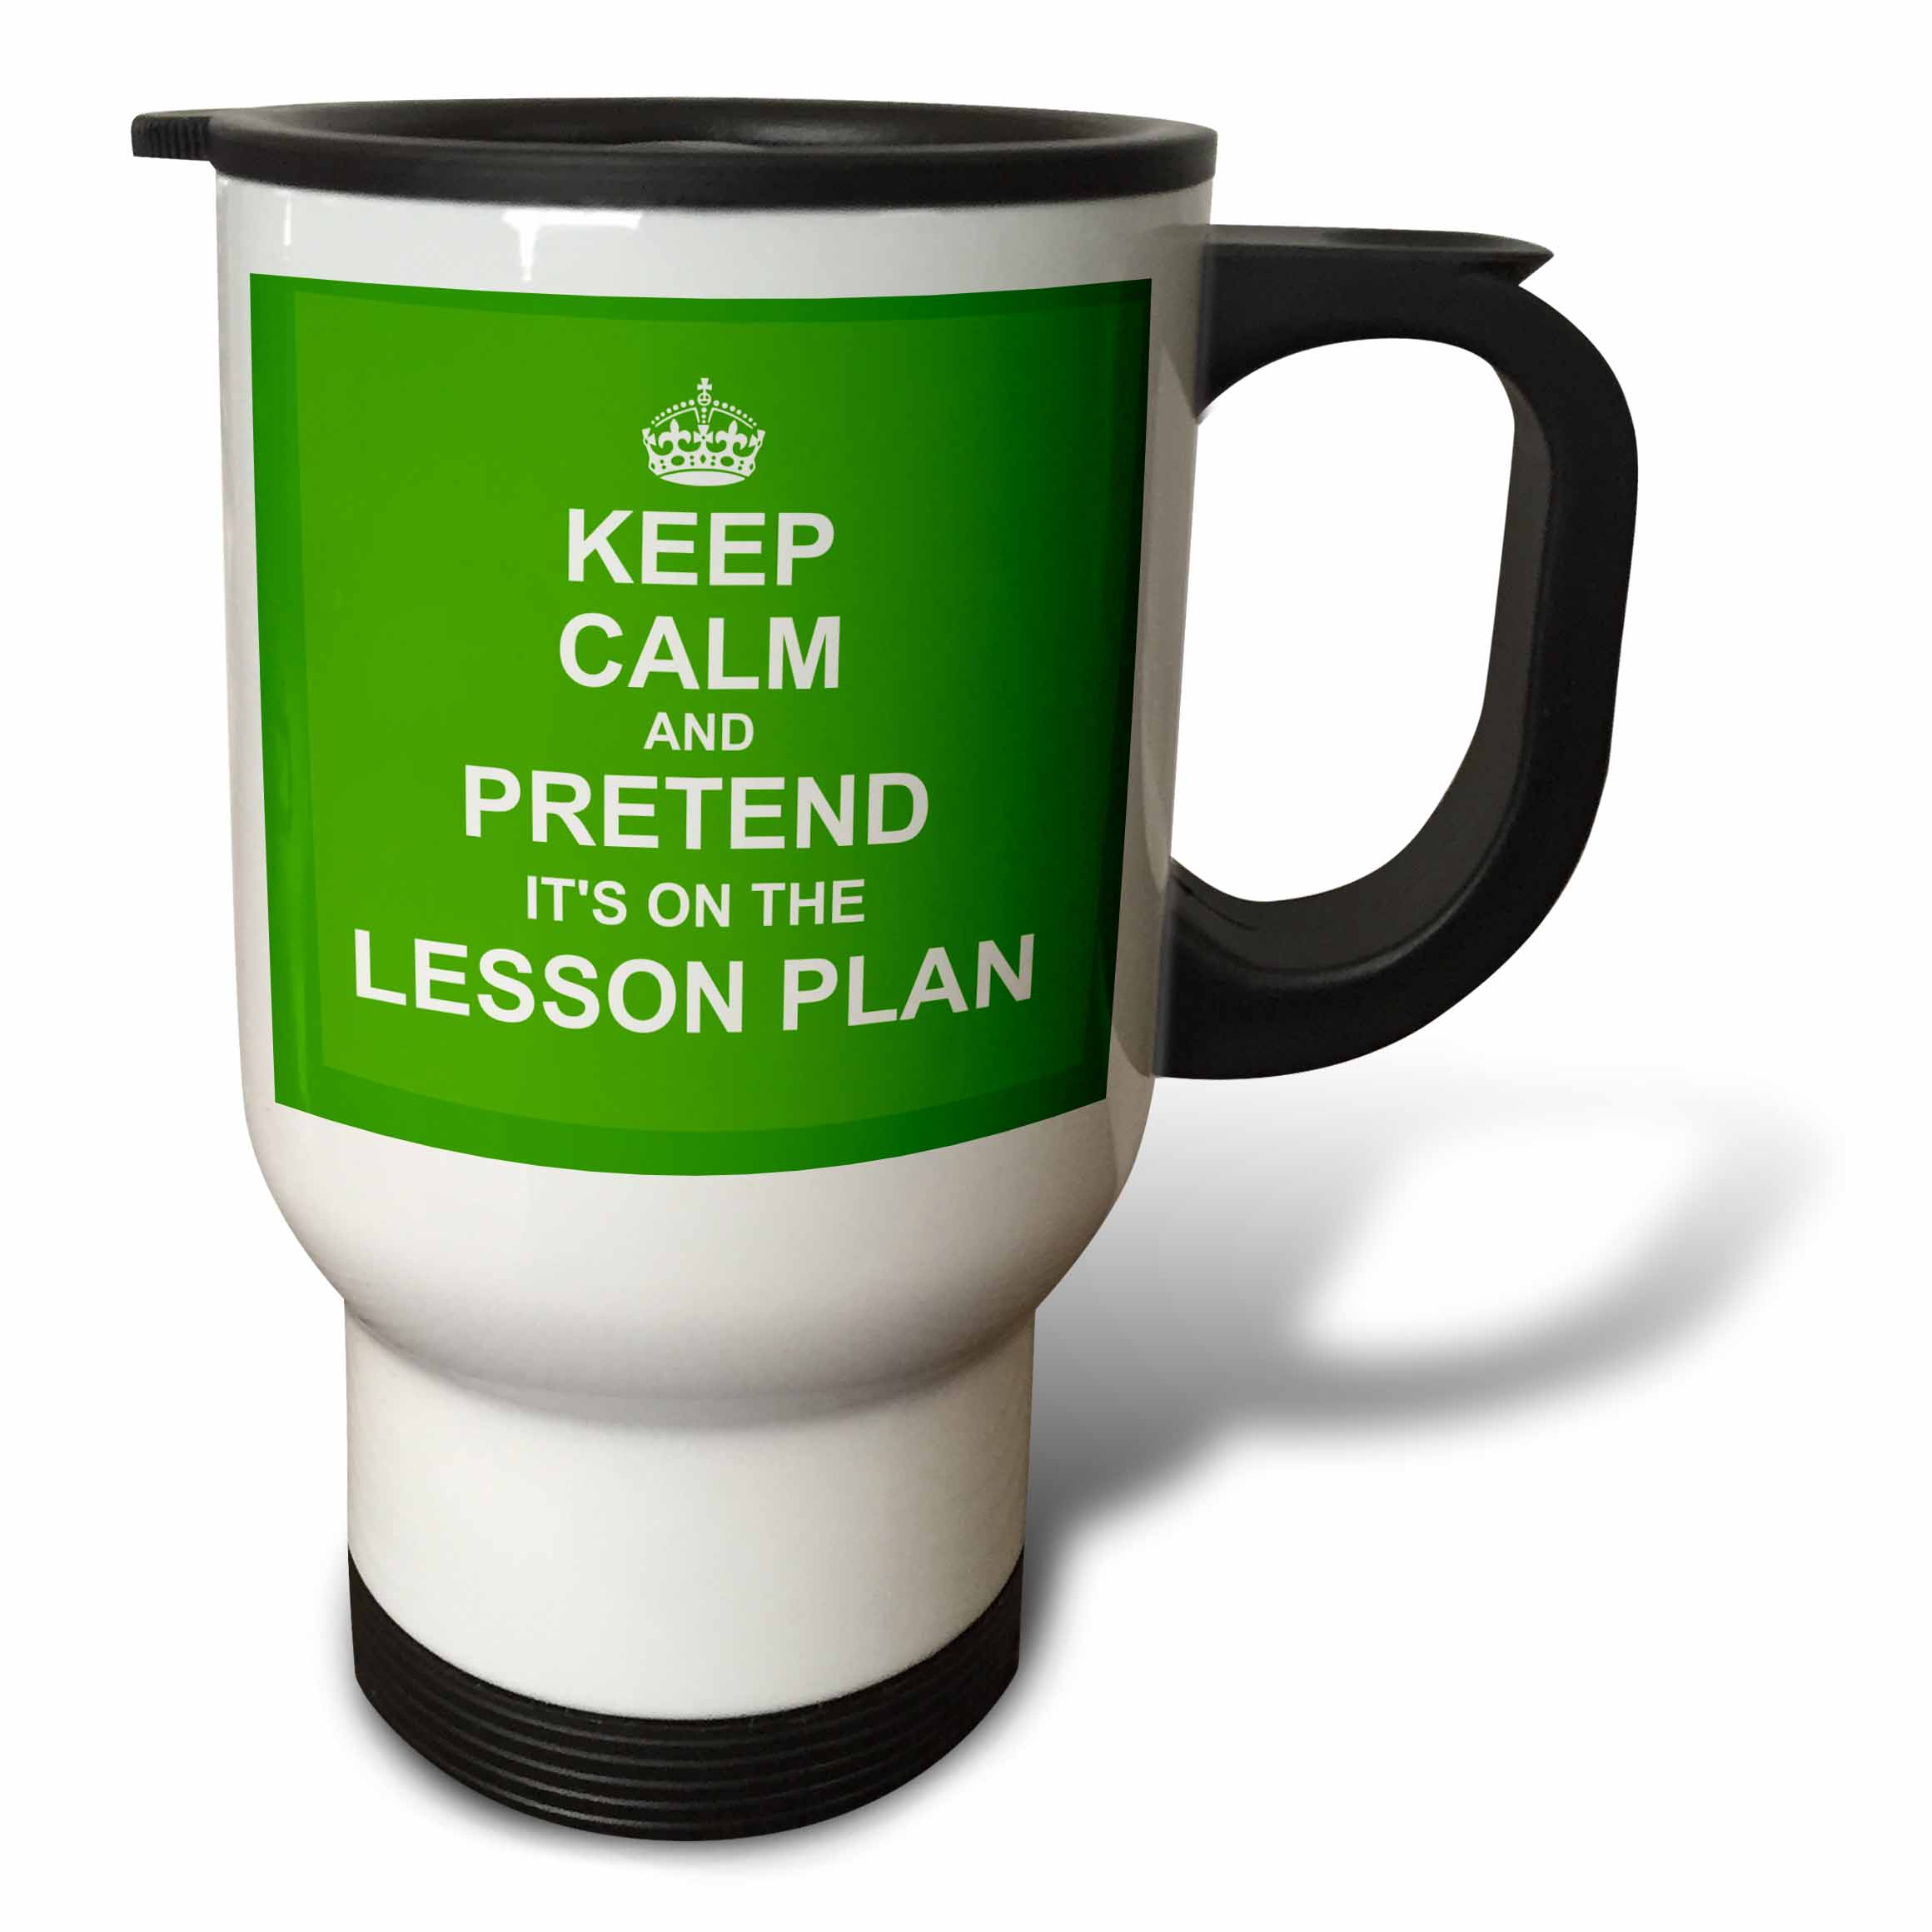 3dRose Green Keep Calm and Pretend its on the Lesson Plan funny teaching gift, Travel Mug, 14oz, Stainless Steel